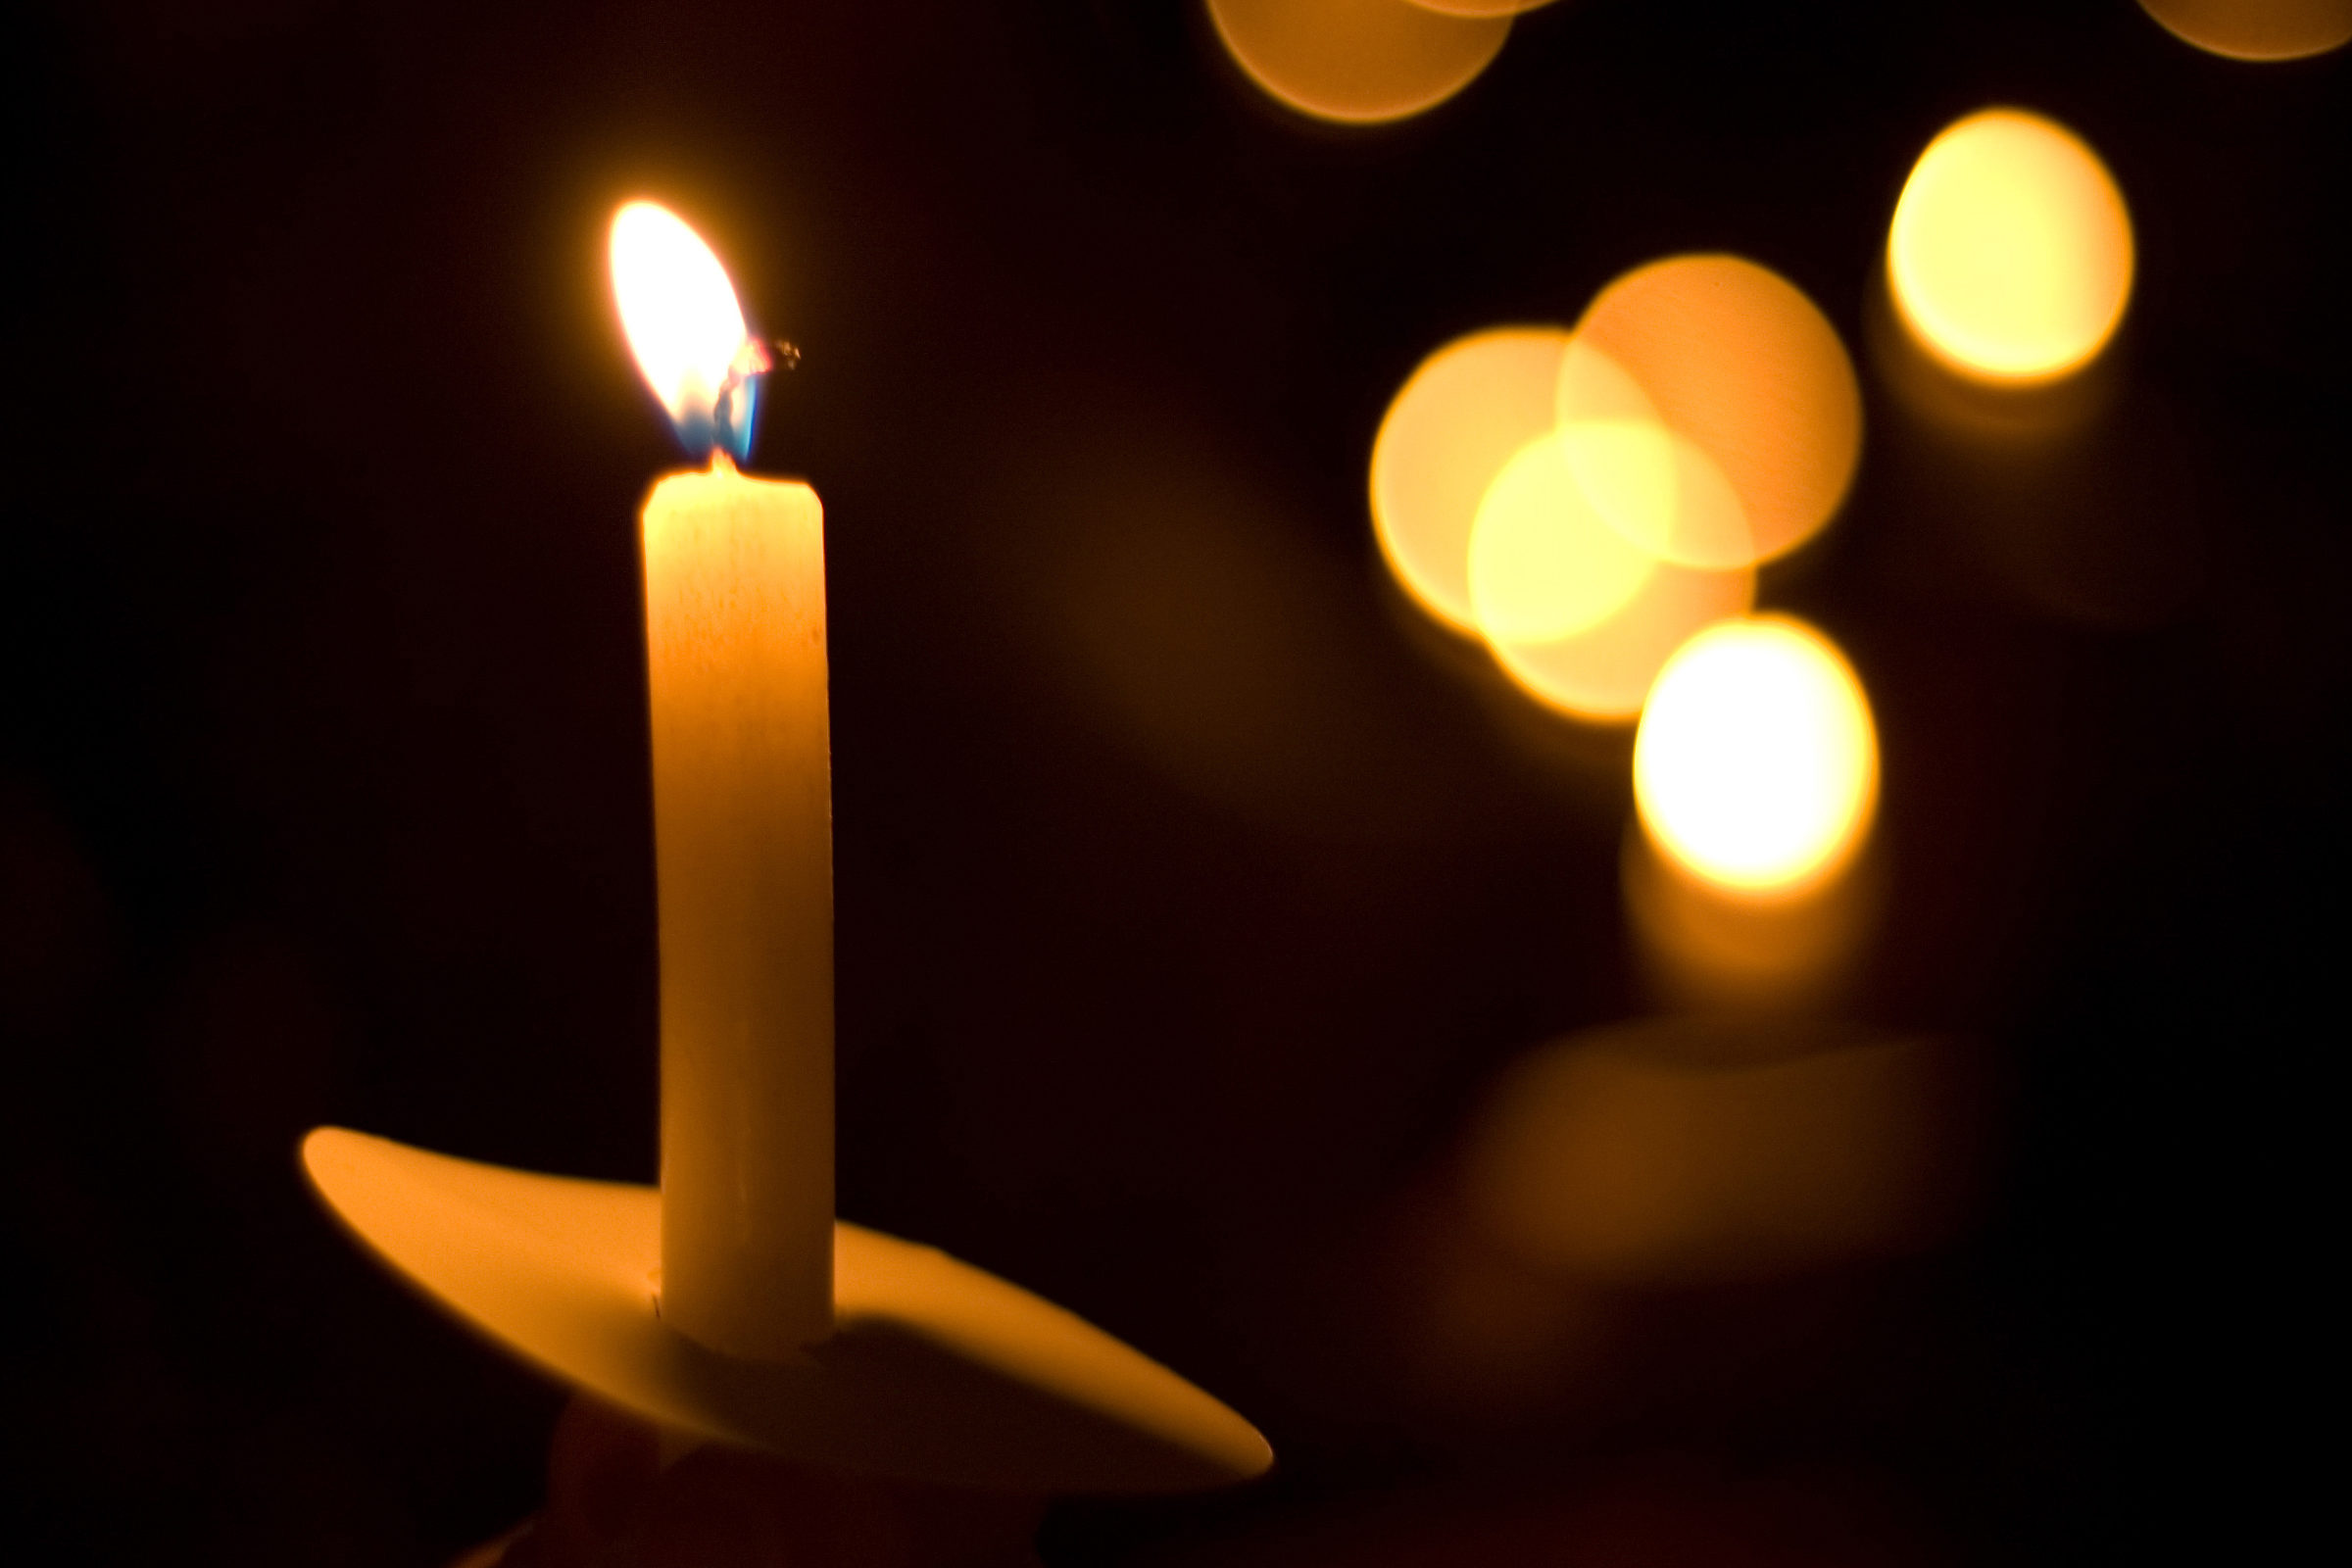 single candle on a dark background with points of light in the distance